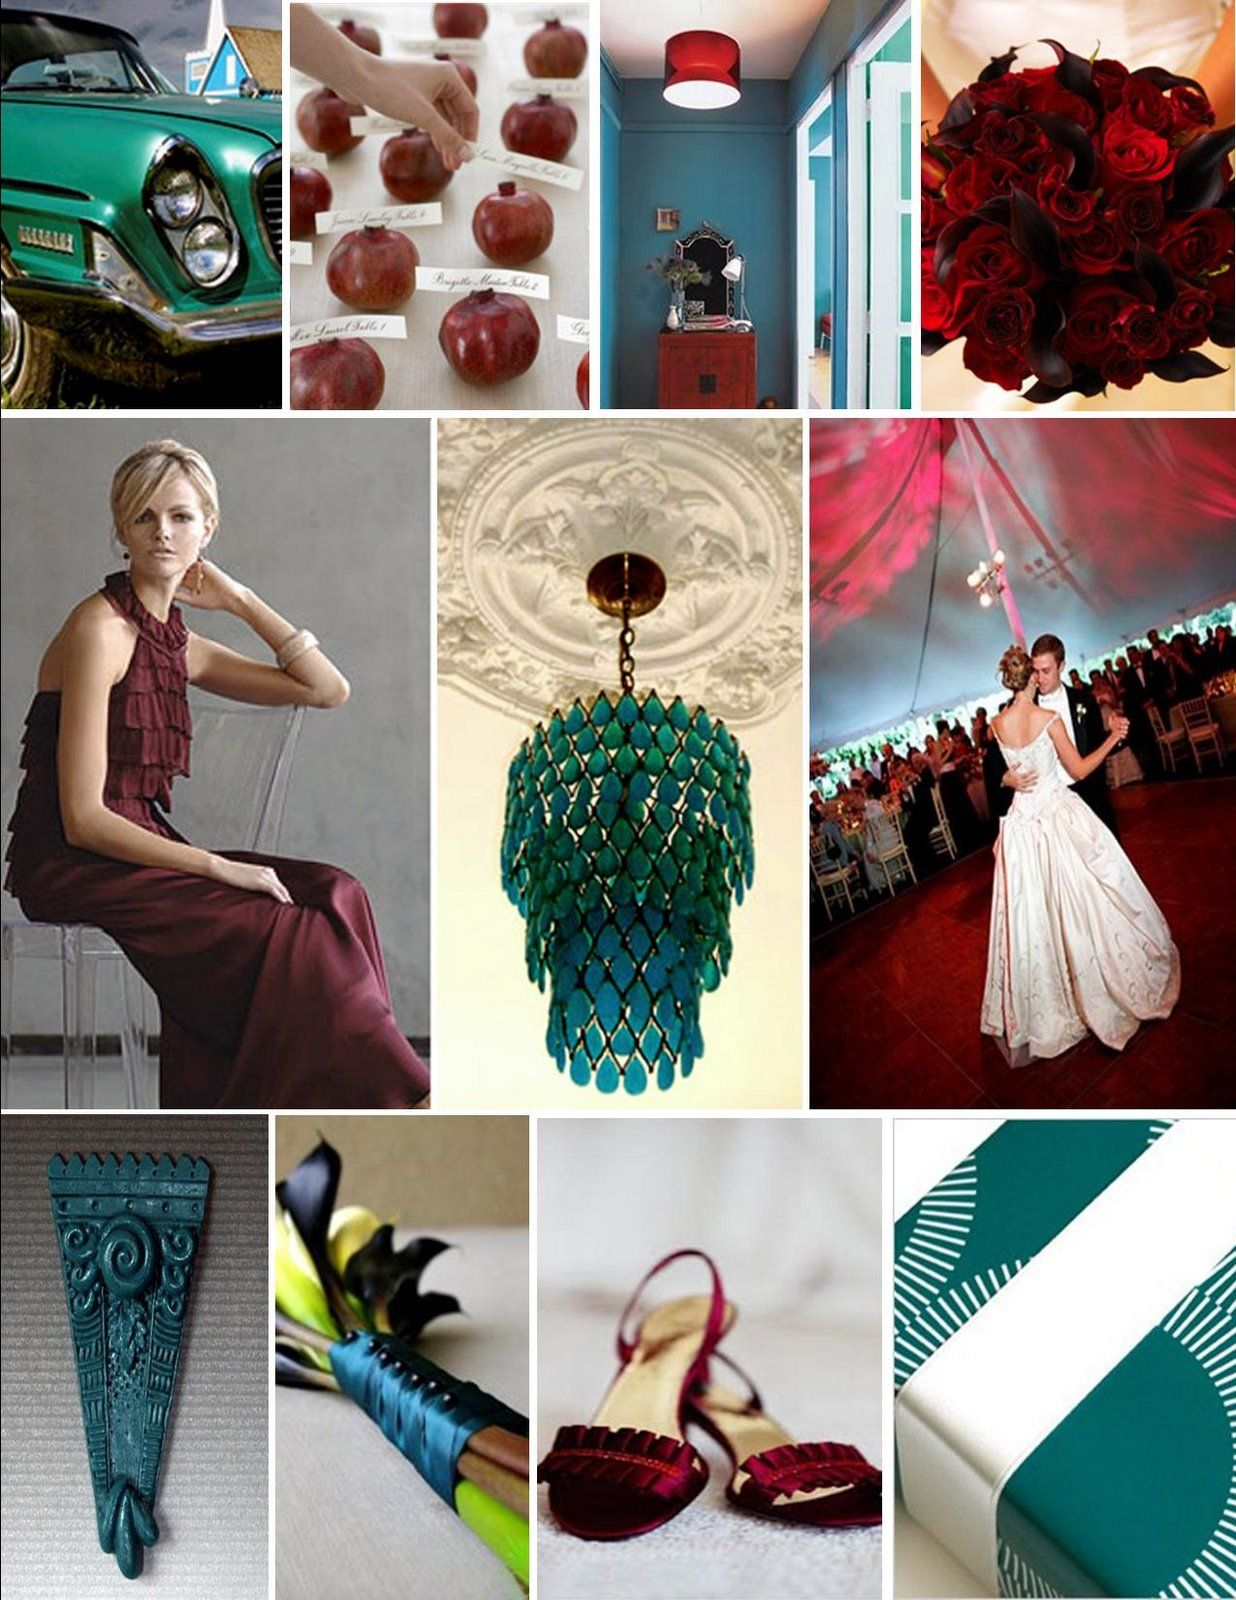 Mixing teal is a fabulous way to add interest to a red toned wedding